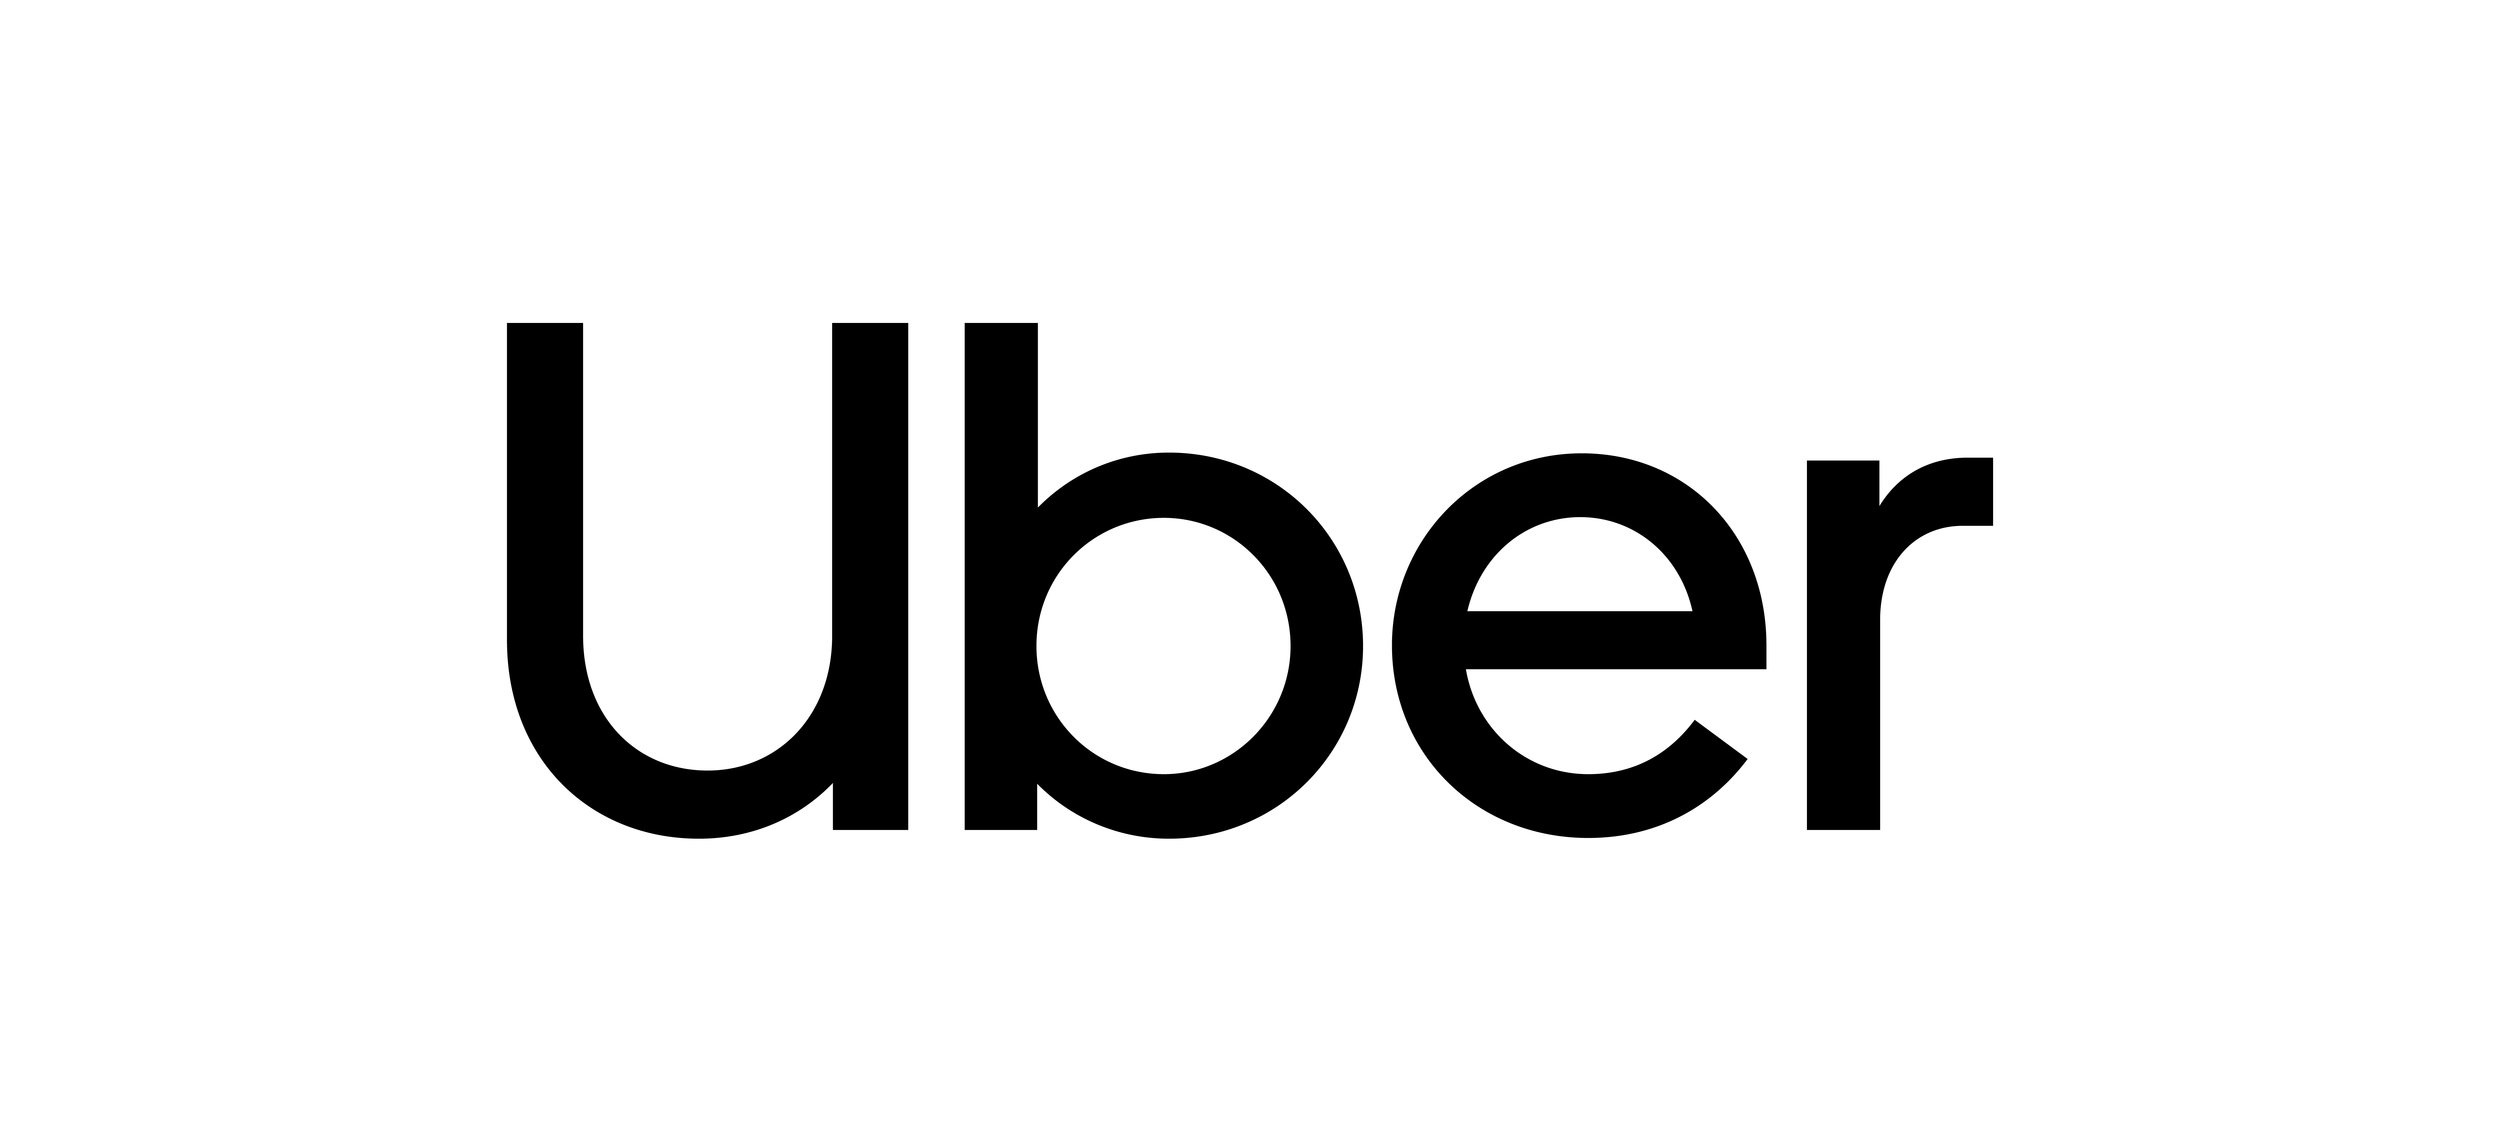 - The world's largest ride-sharing firm is one of our newest partners. Uber are coming in with a major case for you to solve, and their team has some very high expectations for what you deliver!